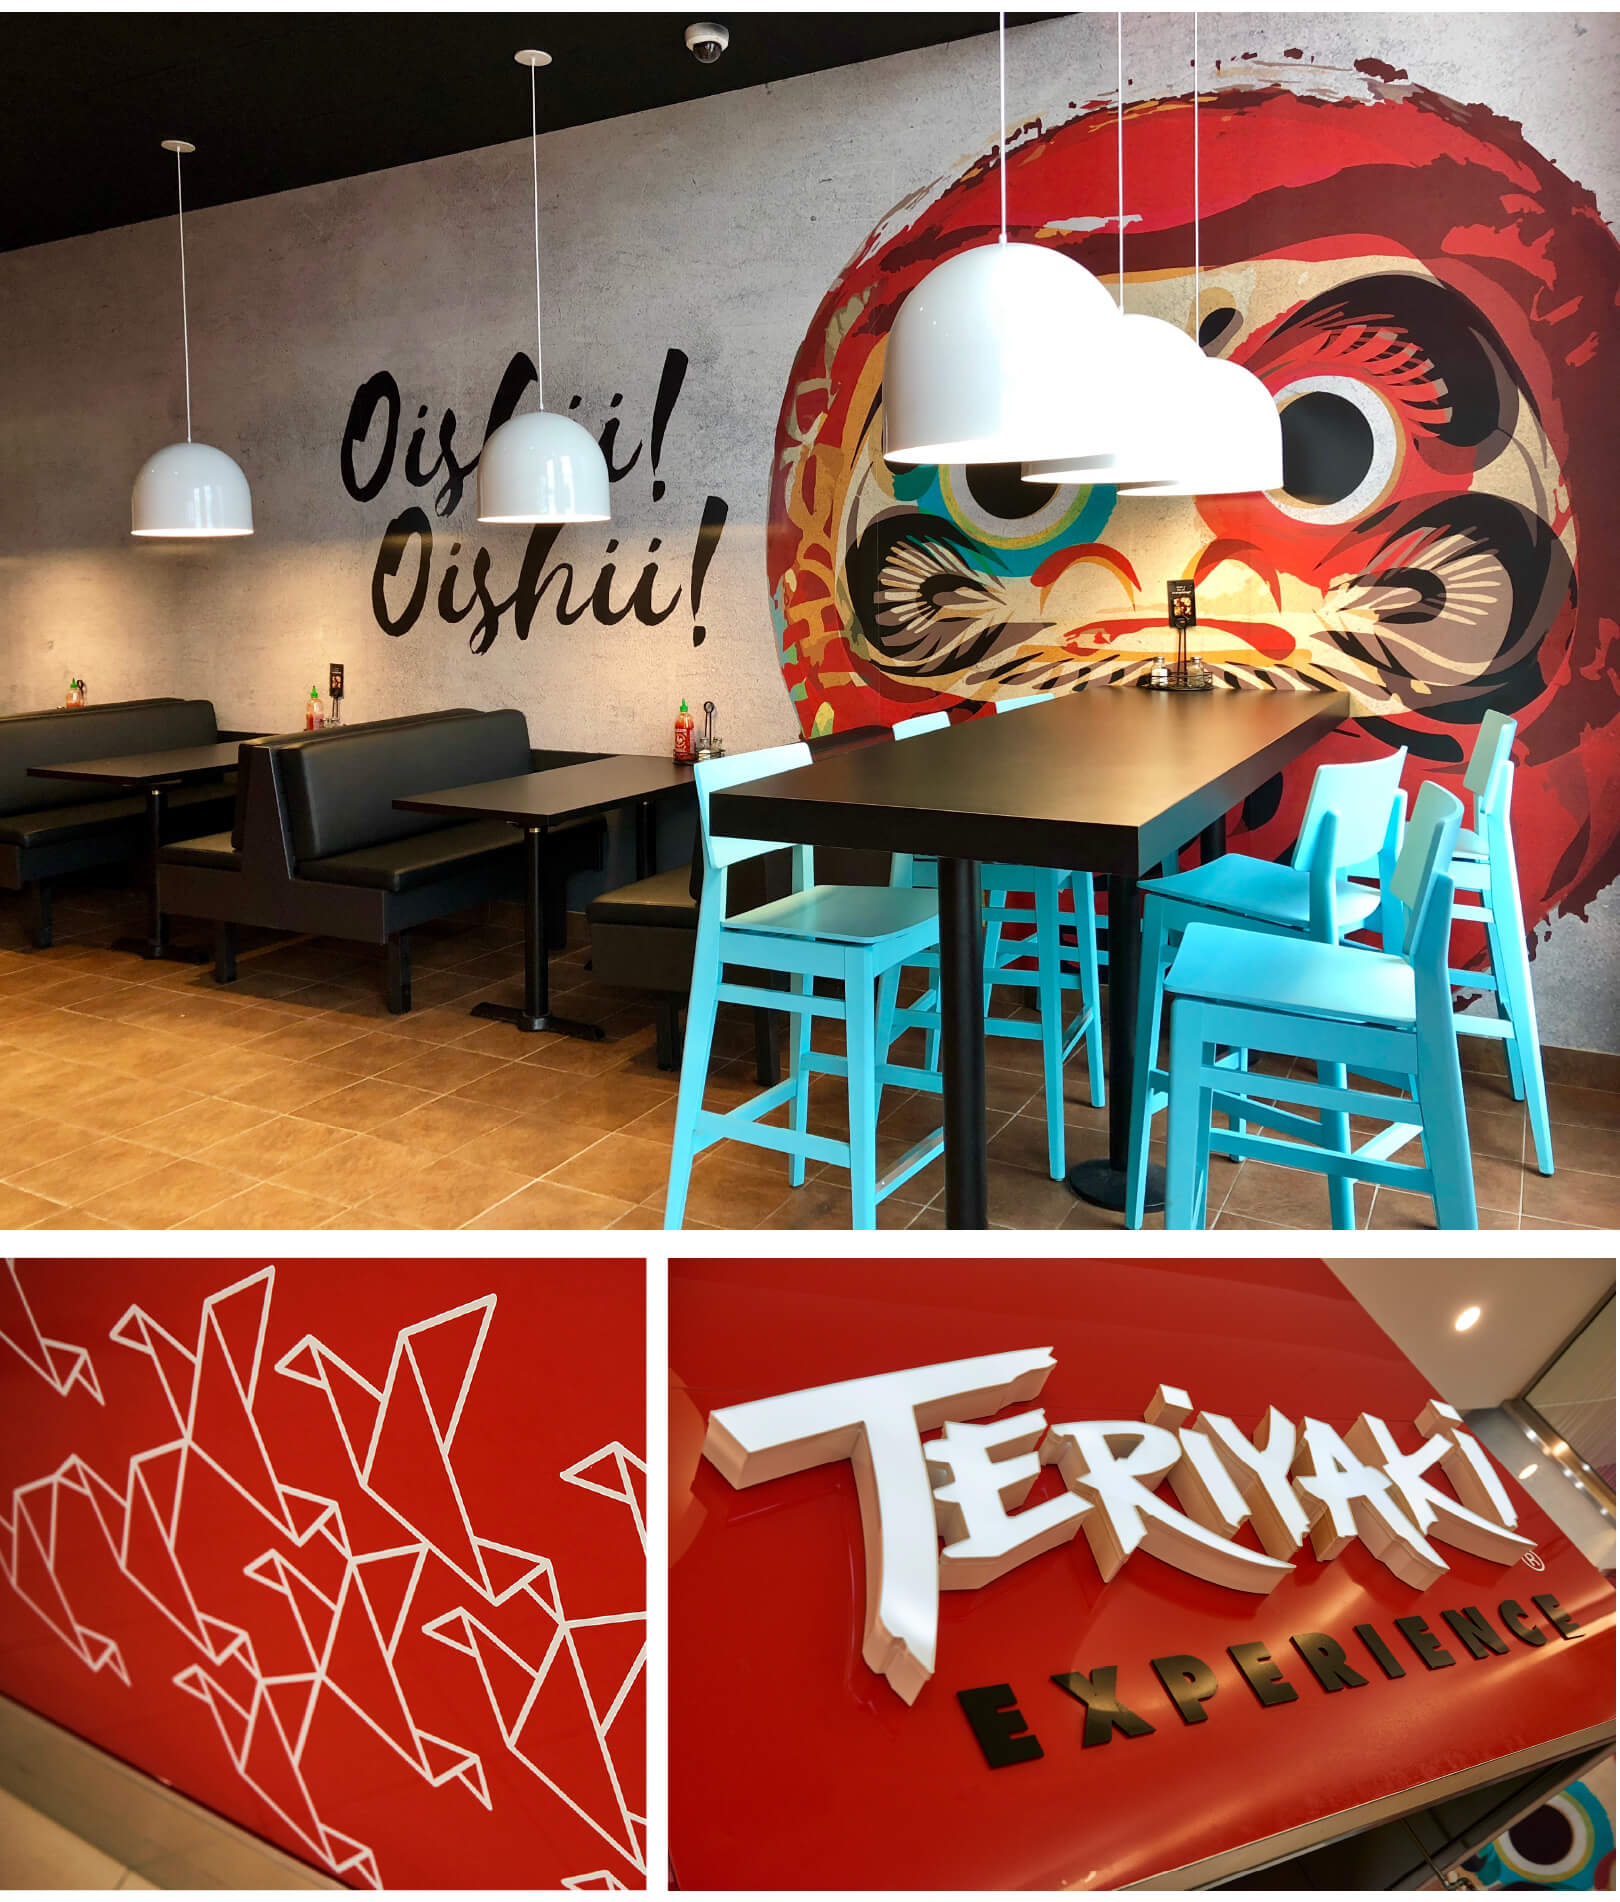 images of the Teriyaki Experience restaurant